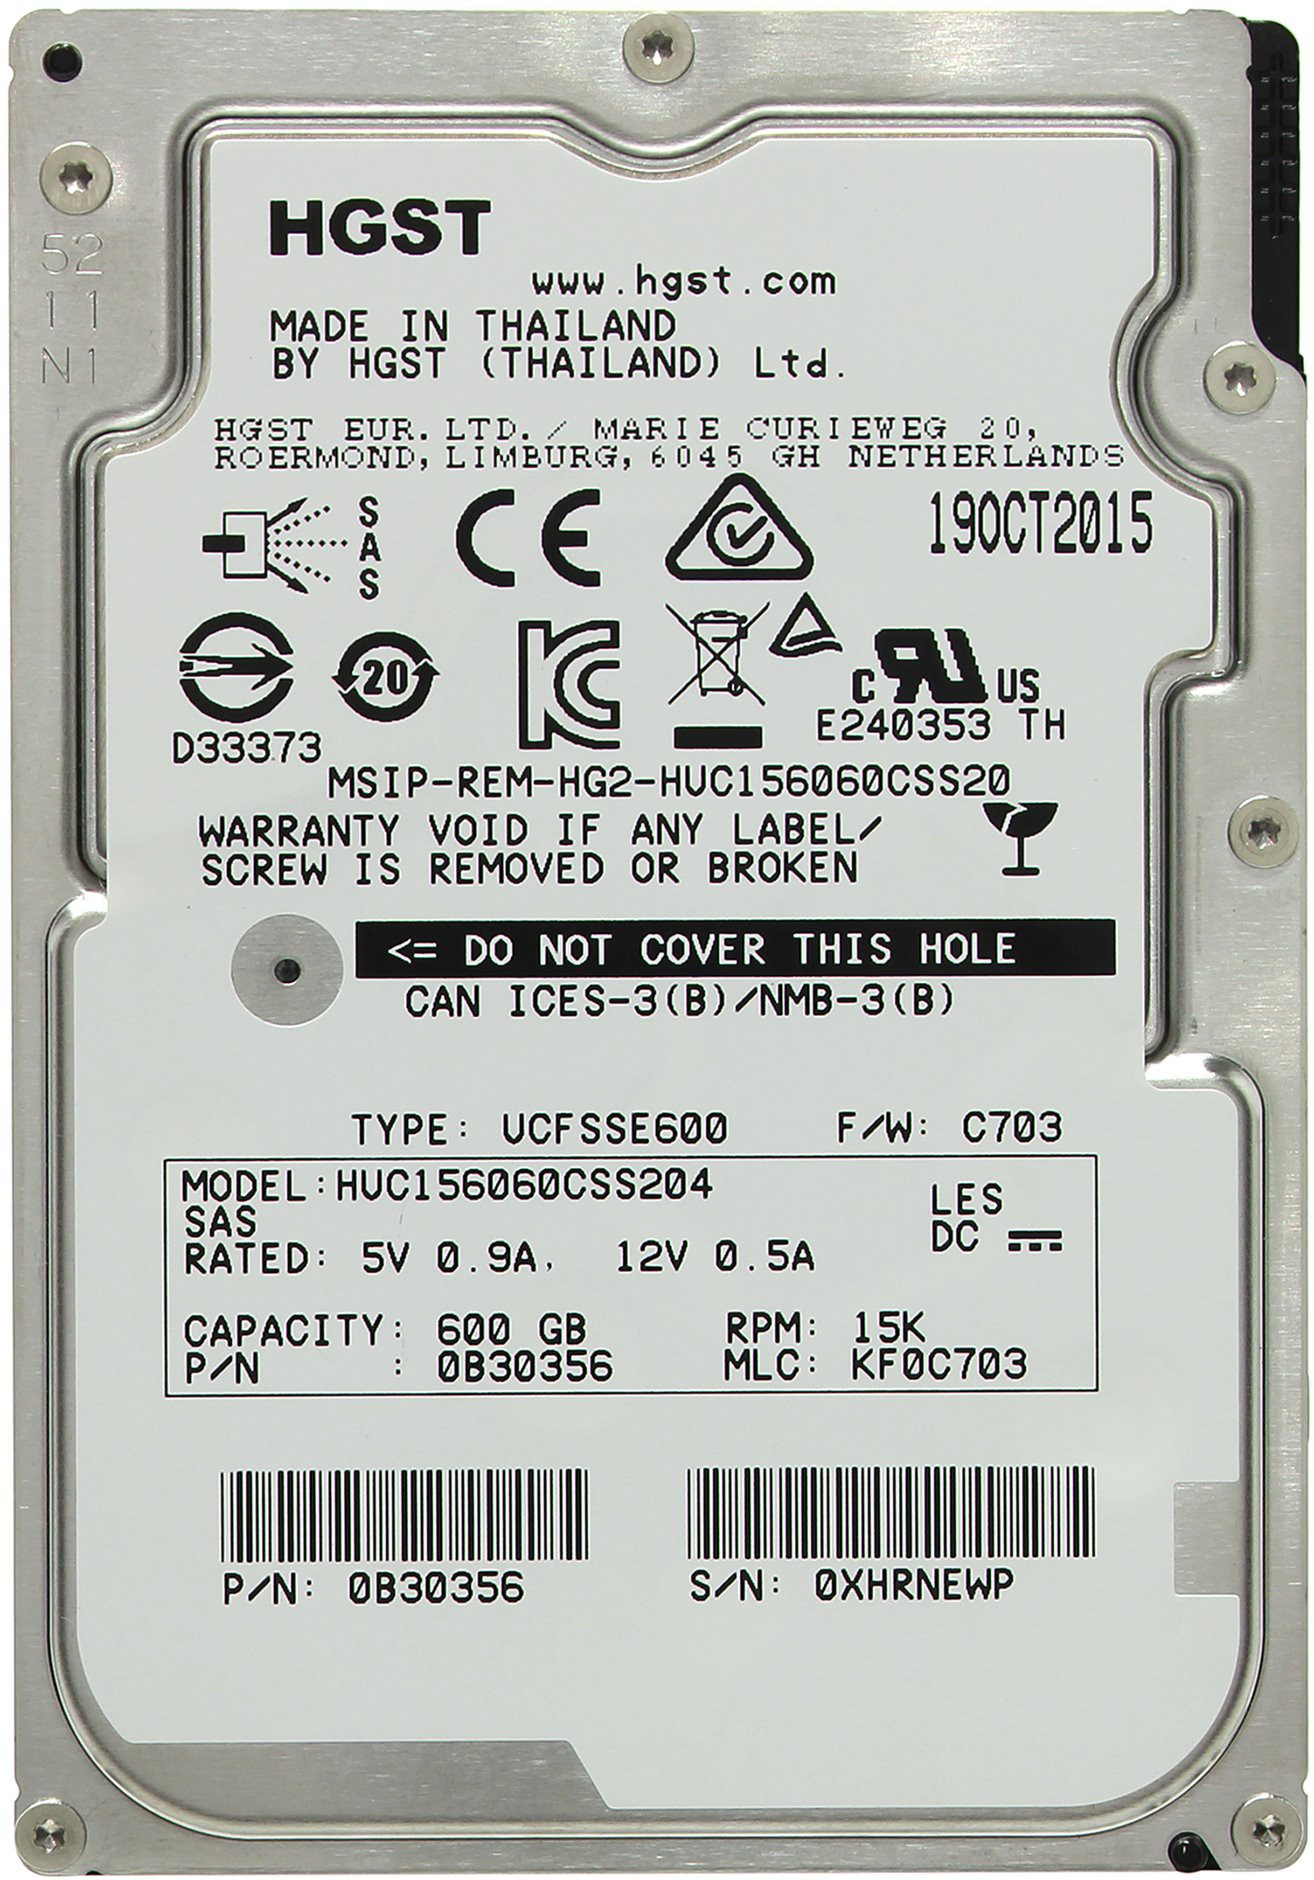 Жёсткий диск 600Gb Hitachi Ultrastar 15K600 (HUC156060CSS204) (SAS 2.0, 15000rpm, 128Mb)